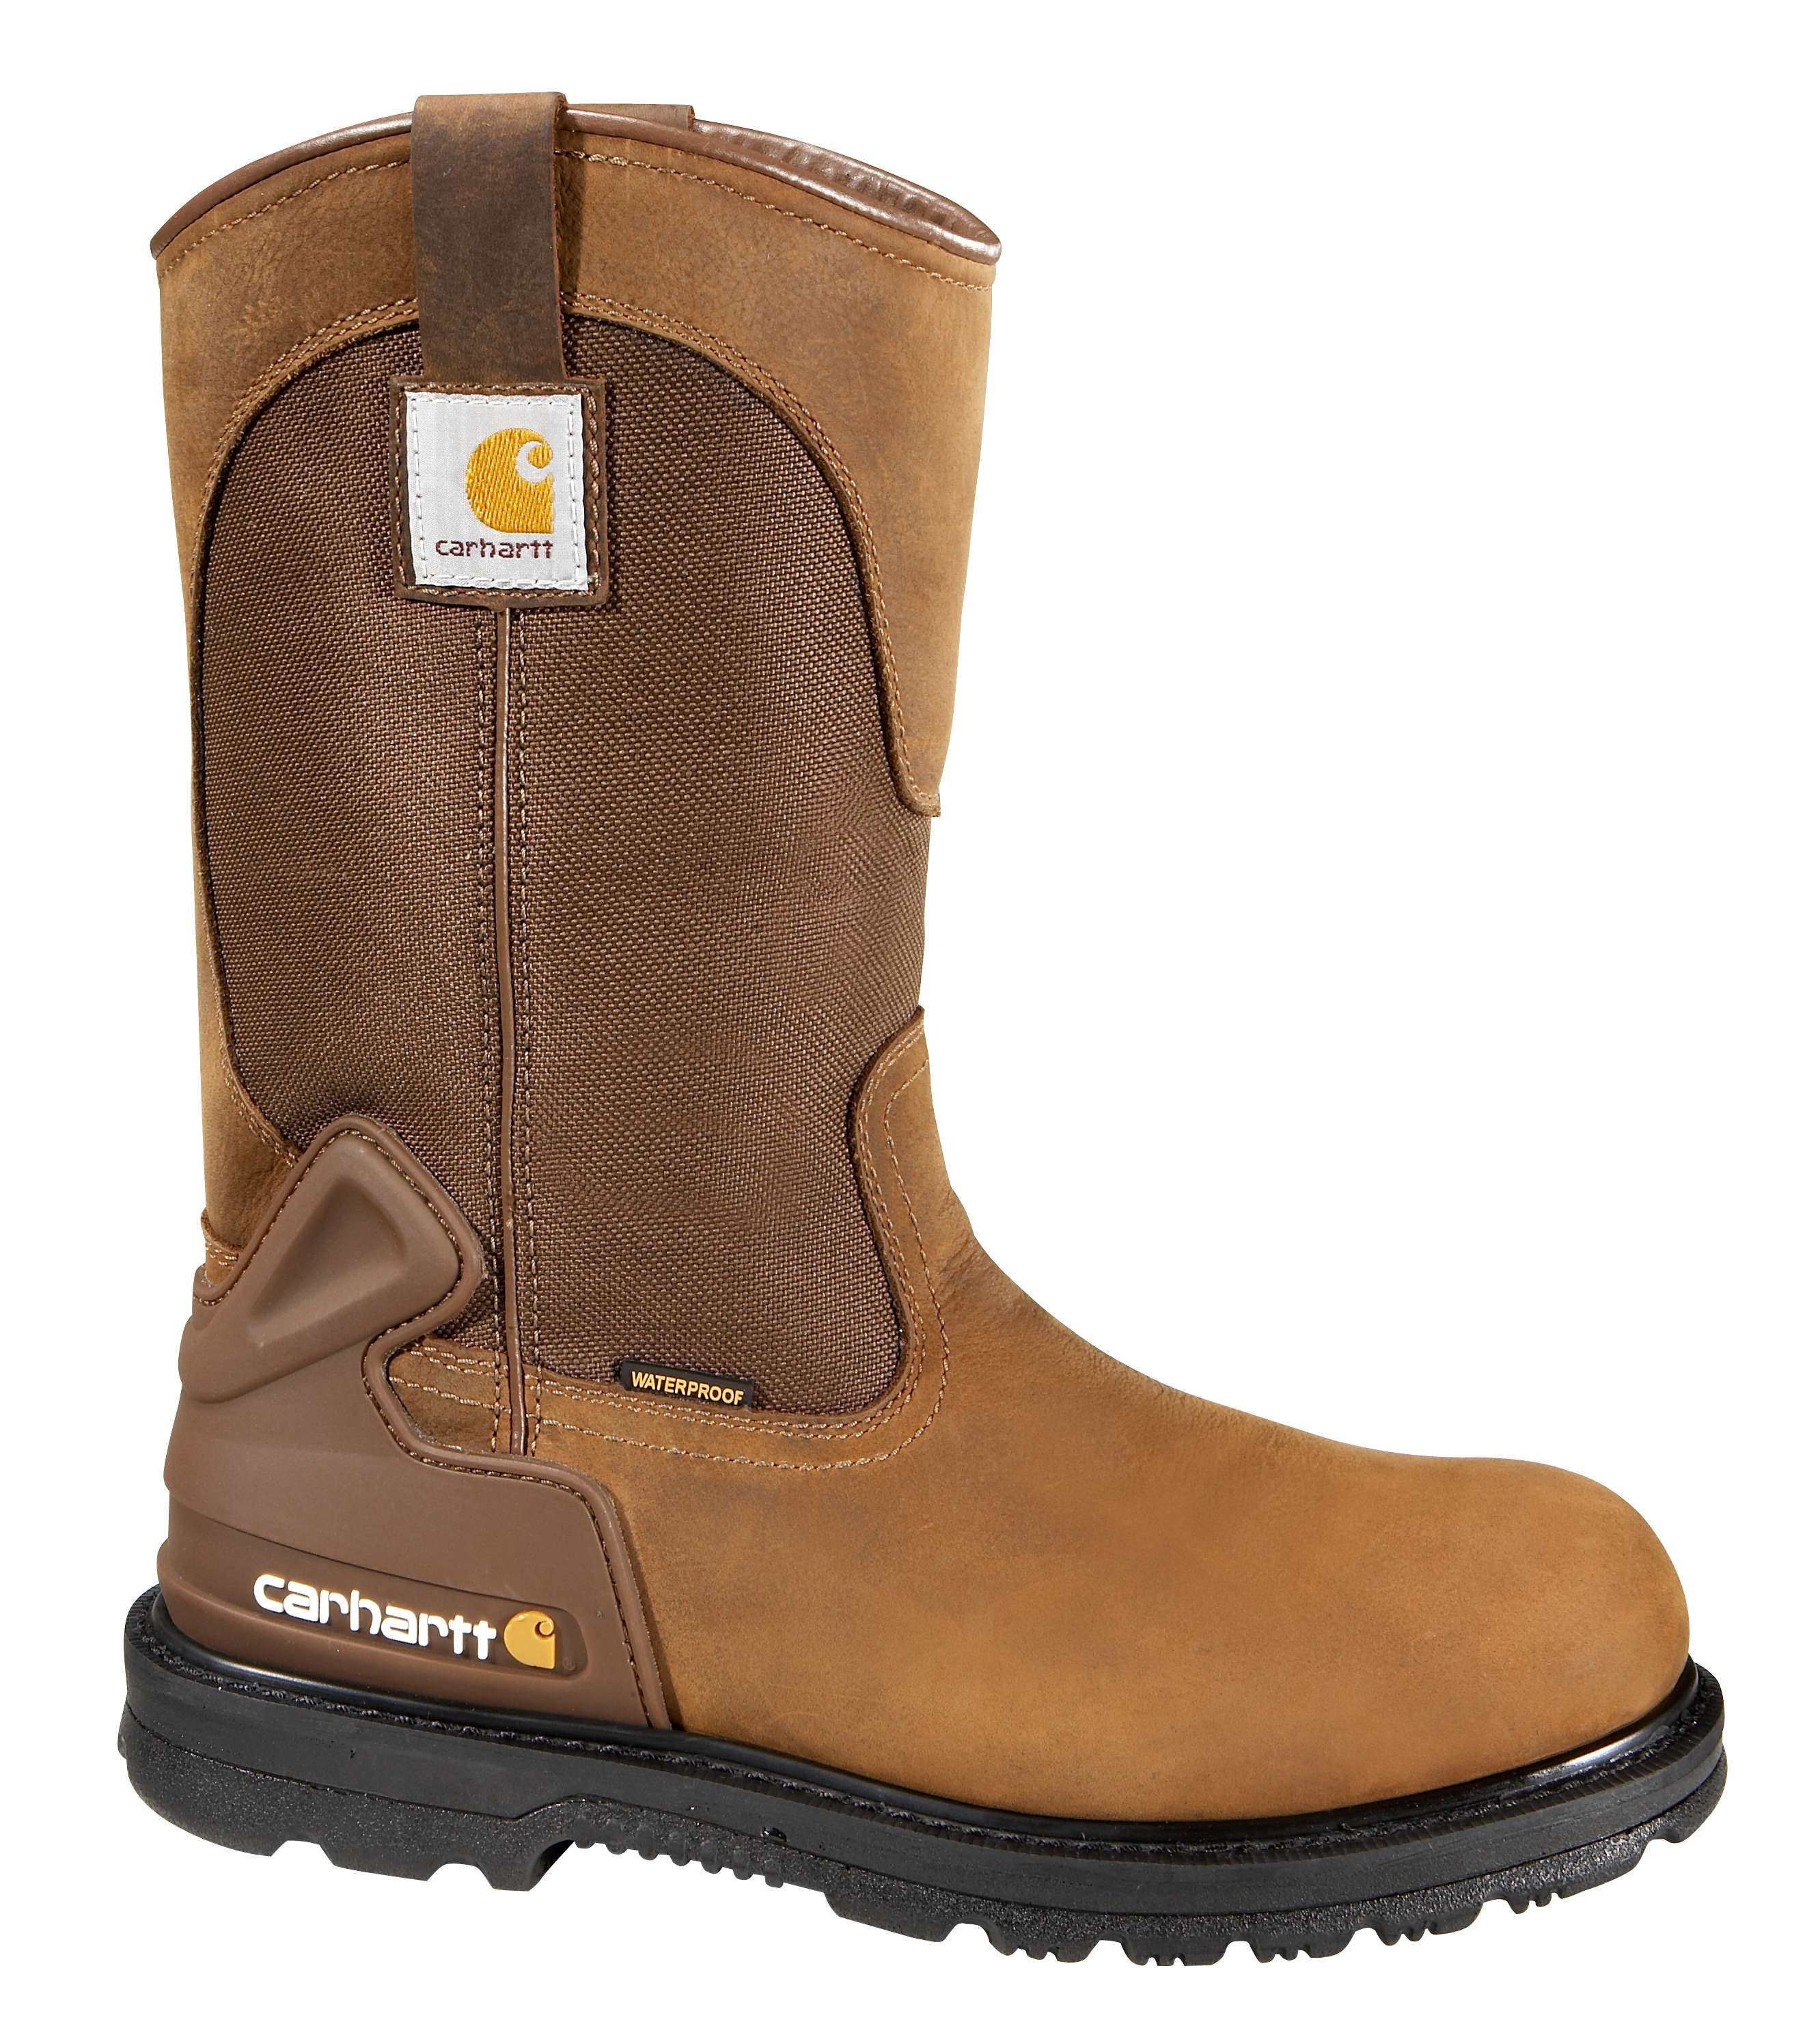 Carhartt 11-Inch Non-Safety Toe Wellington Boot